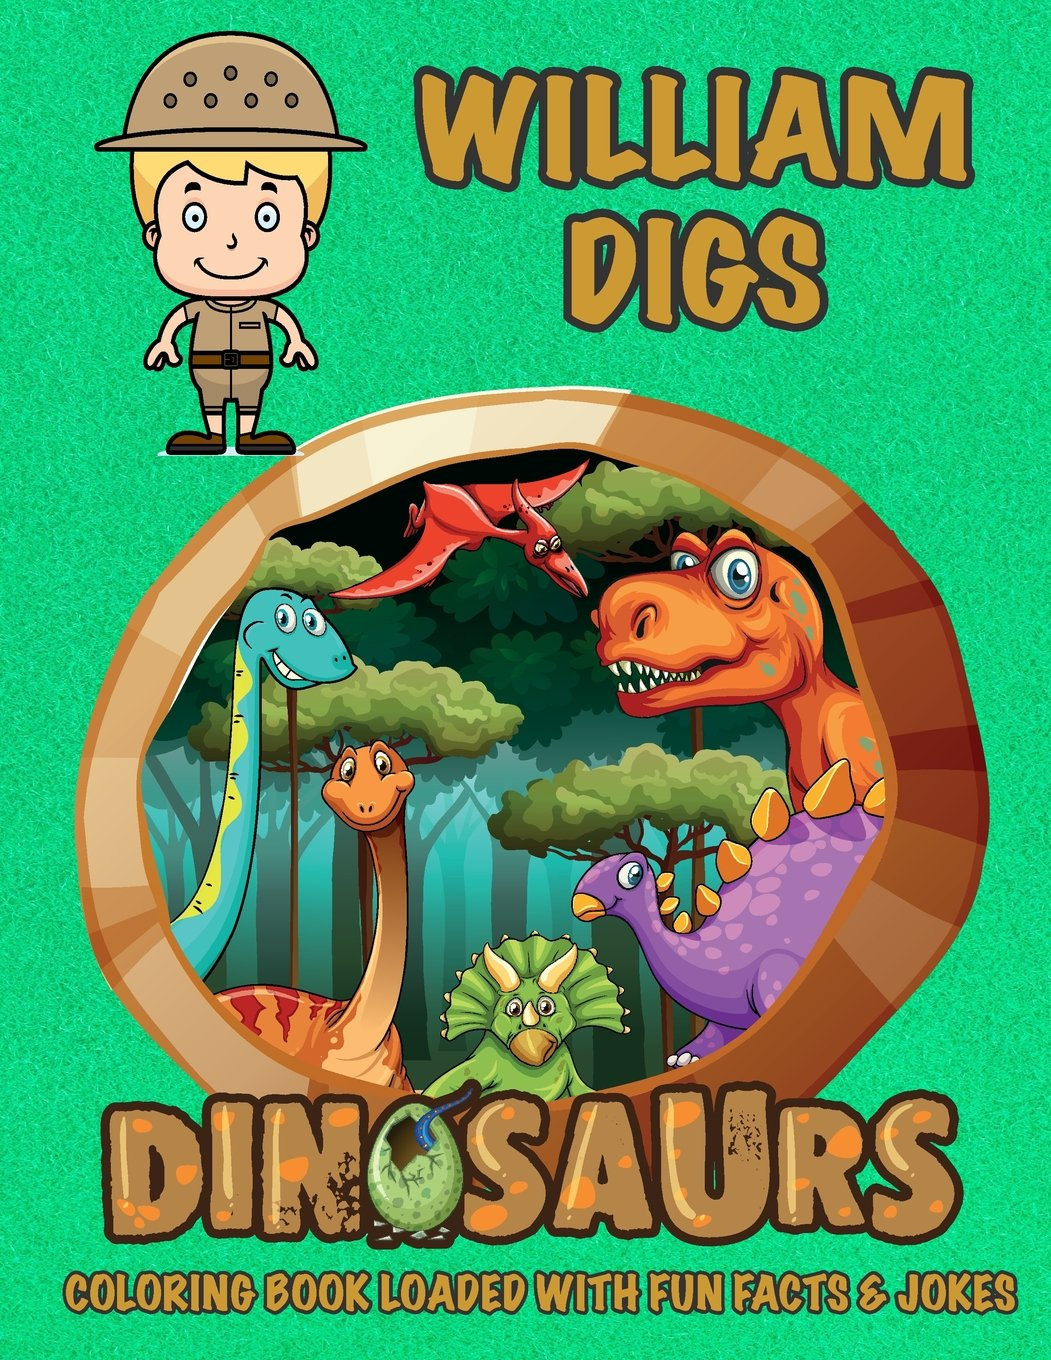 William Digs Dinosaurs Coloring Book Loaded With Fun Facts & Jokes (Personalized Books for Children) pdf